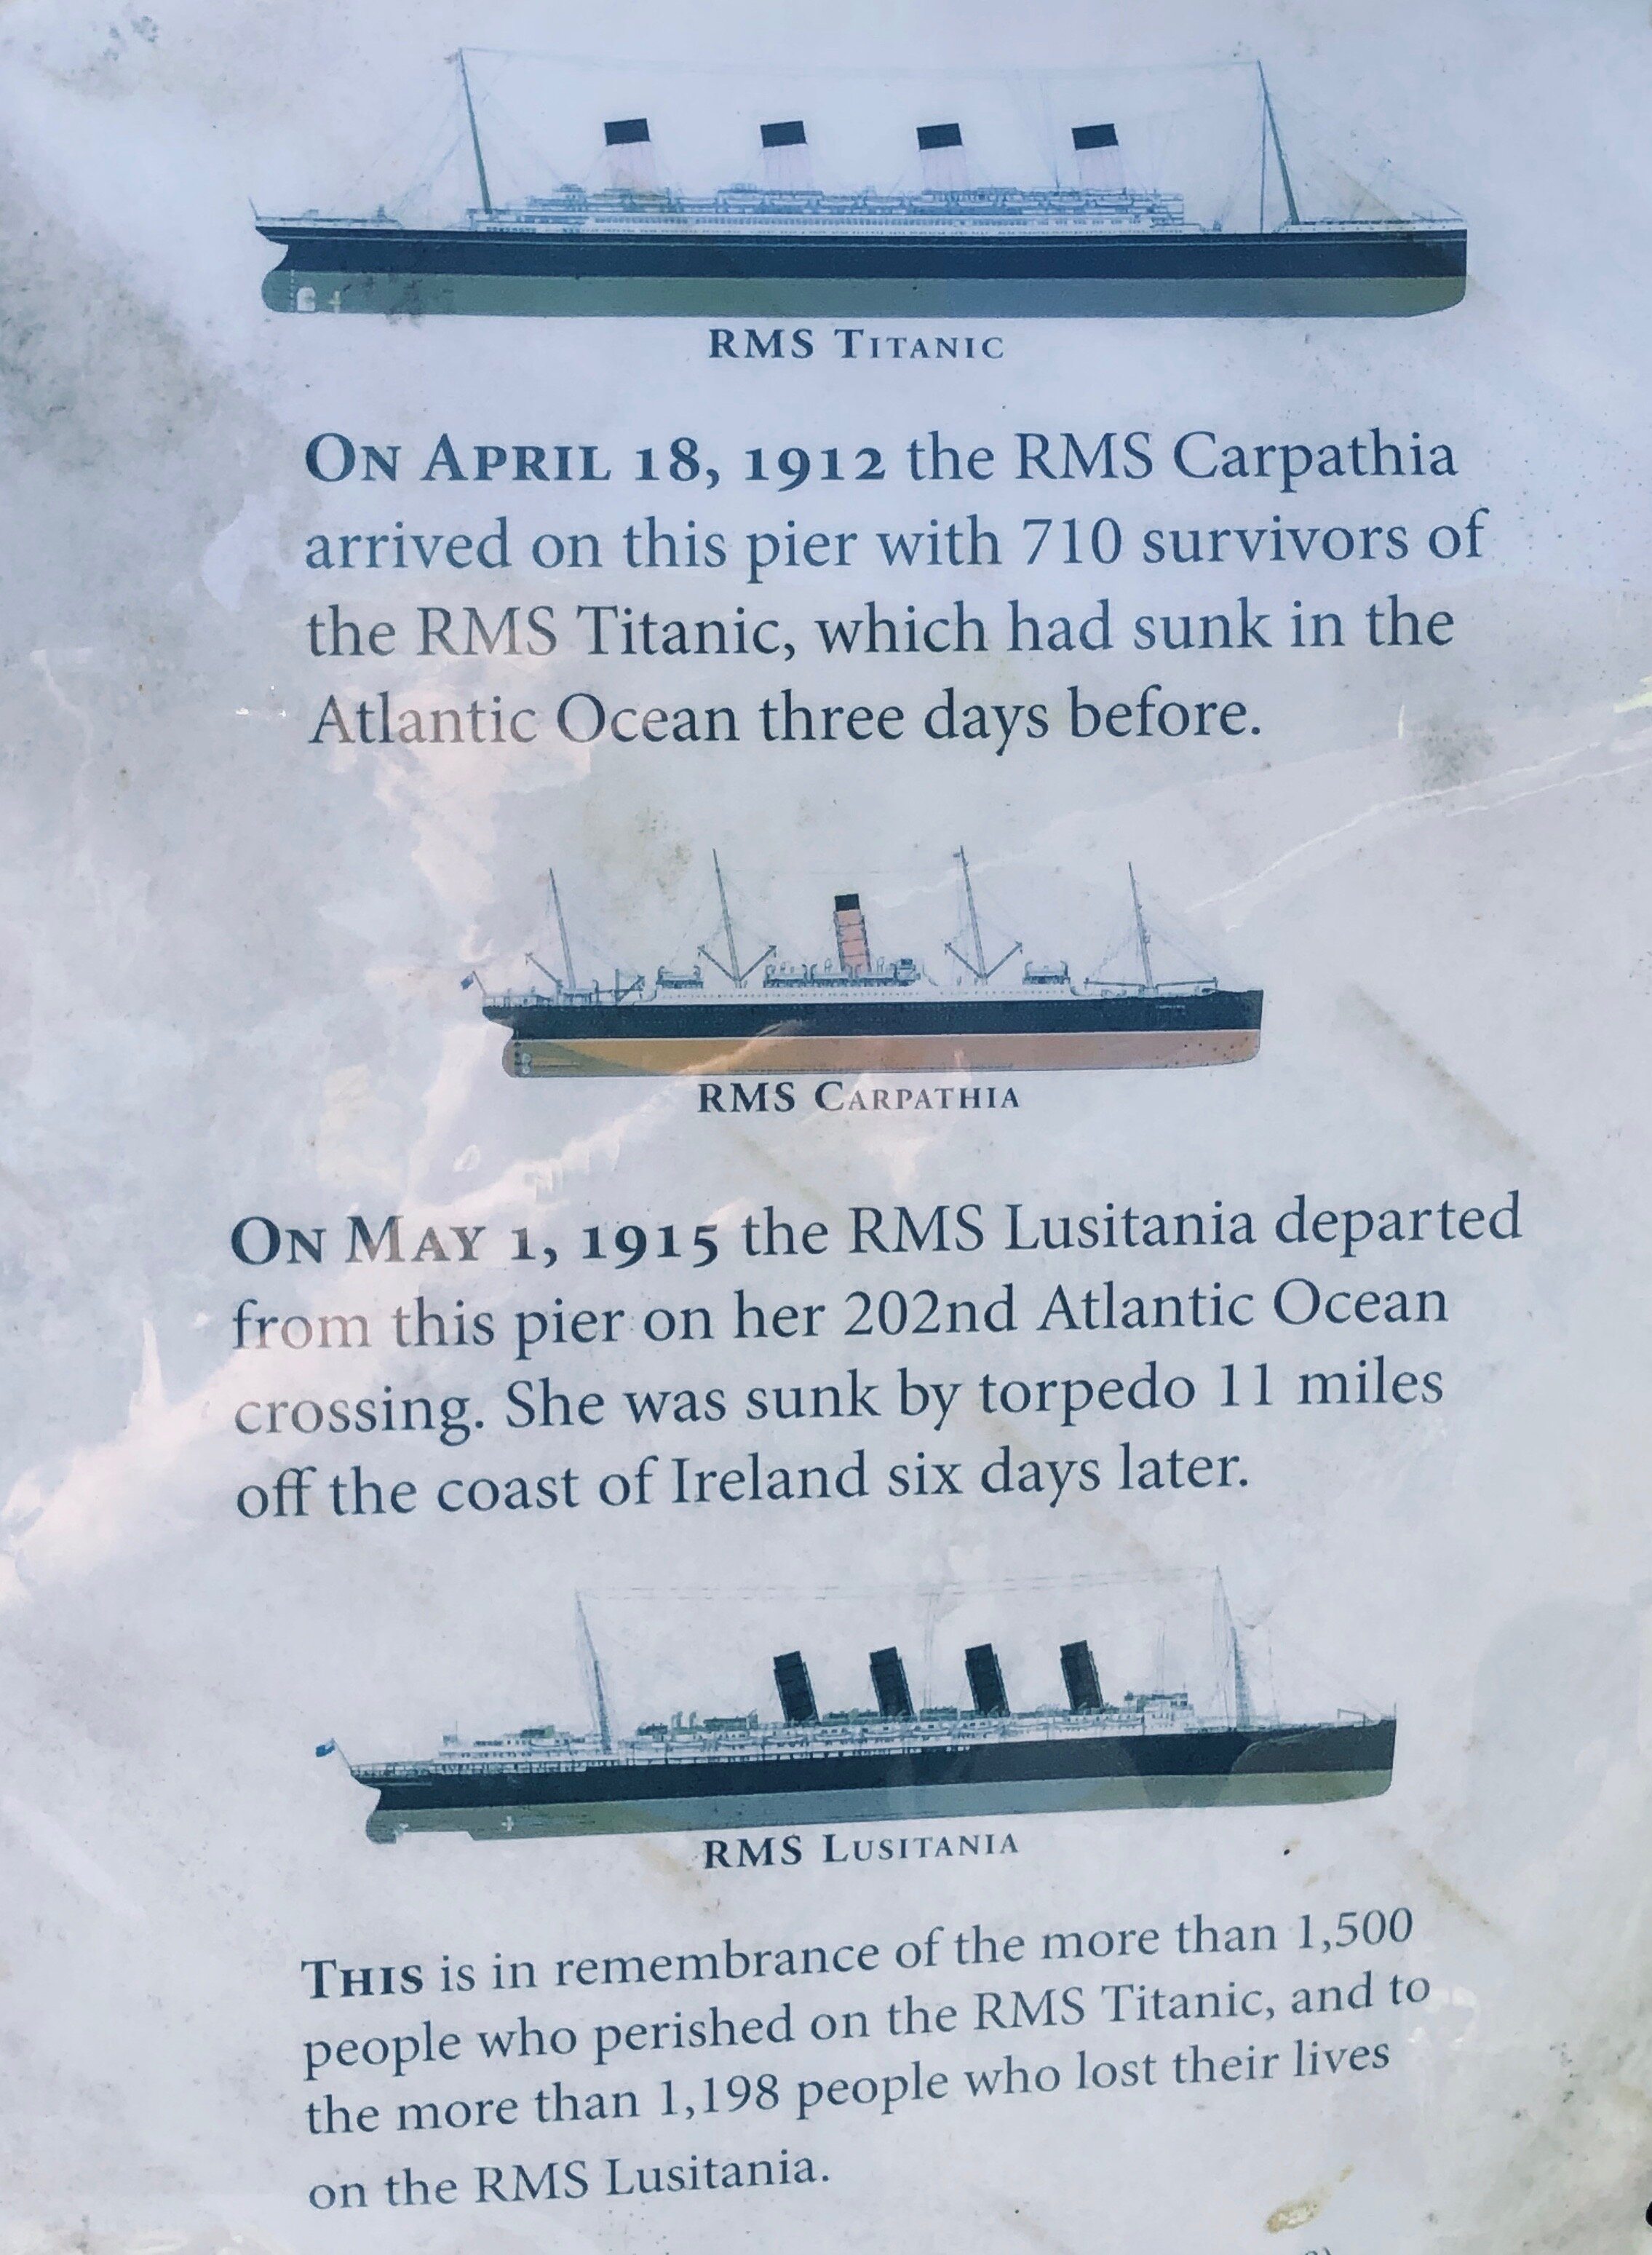 Some information posted on the park construction site, formerly the Cunard, Whitestar Line pier. Not a very lucky point of departure.